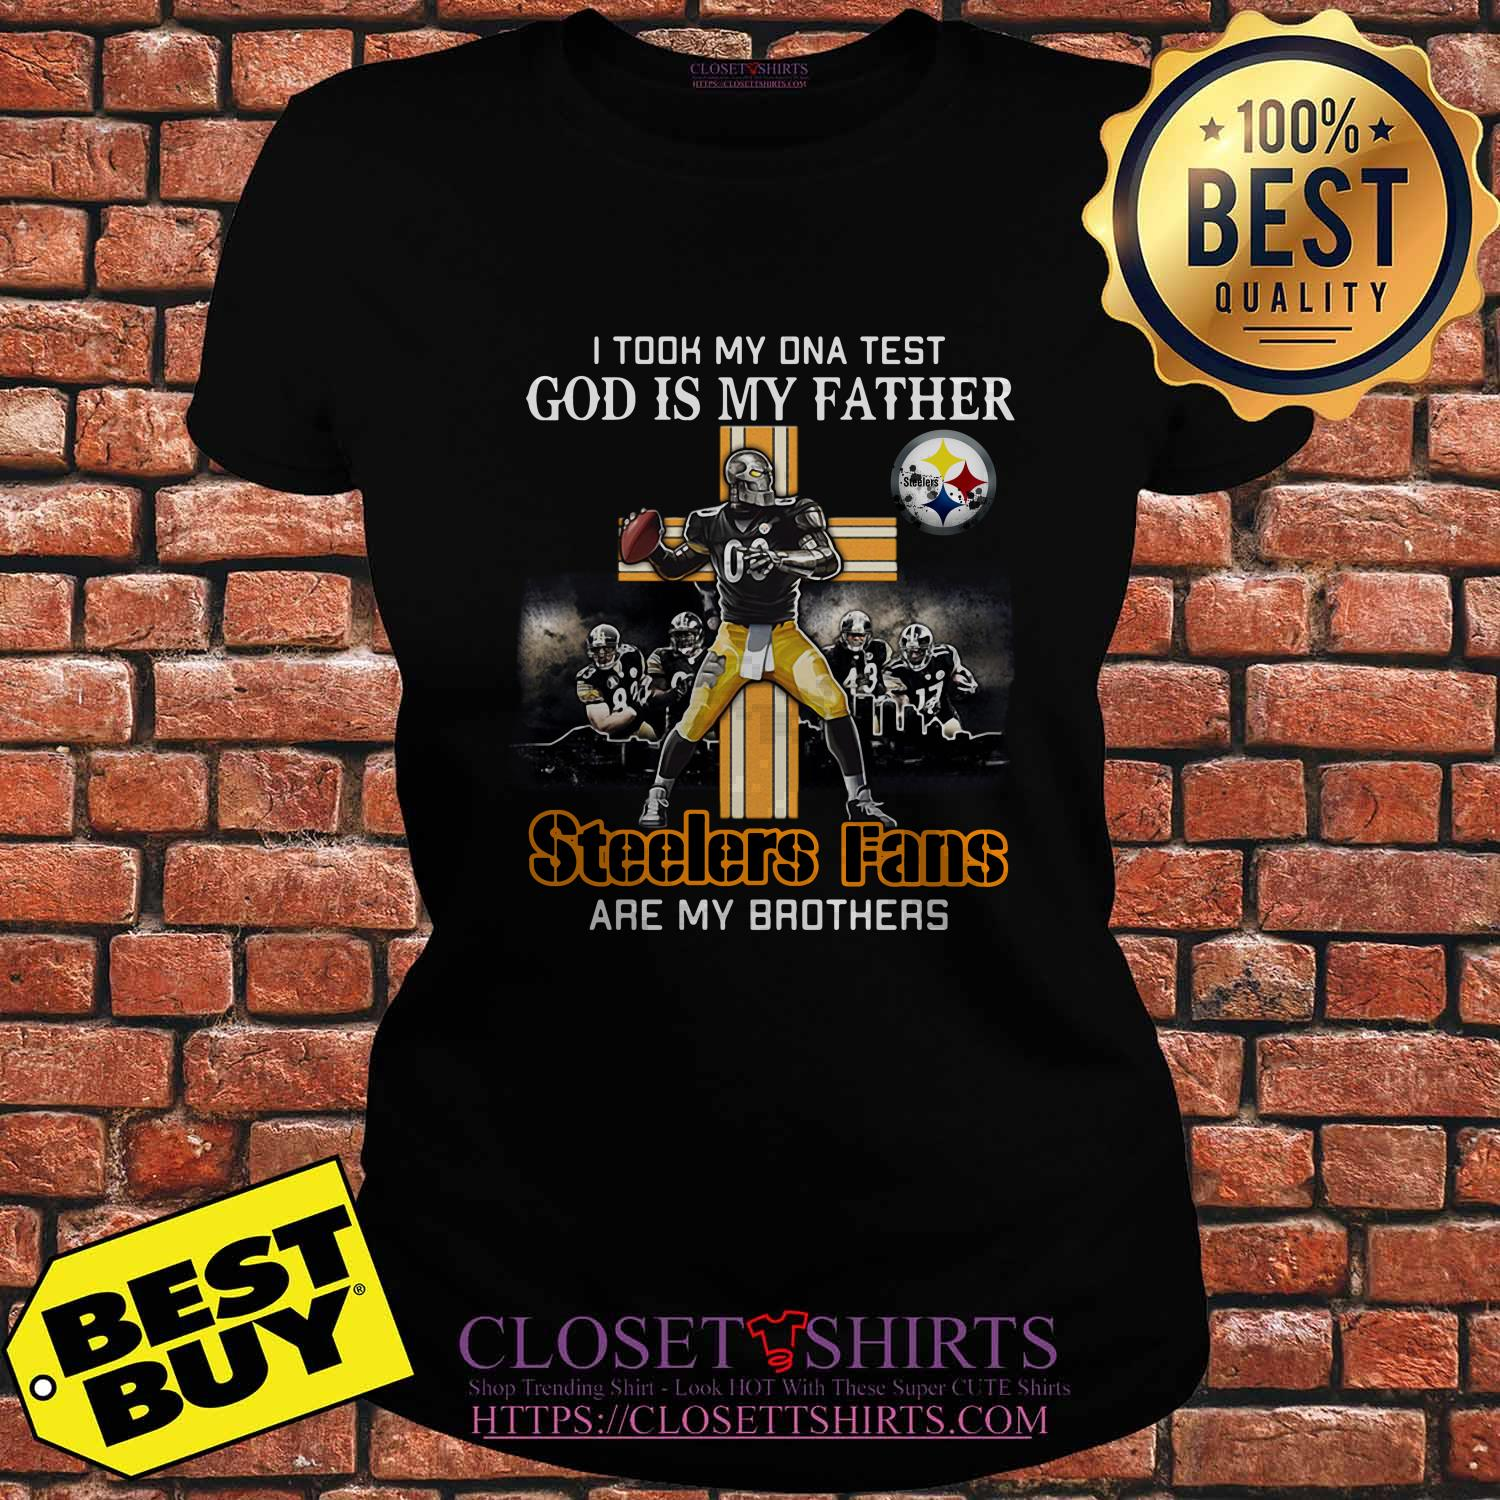 Took Dna Test God Father Pittsburgh Steelers Fans Brothers Ladies Tee